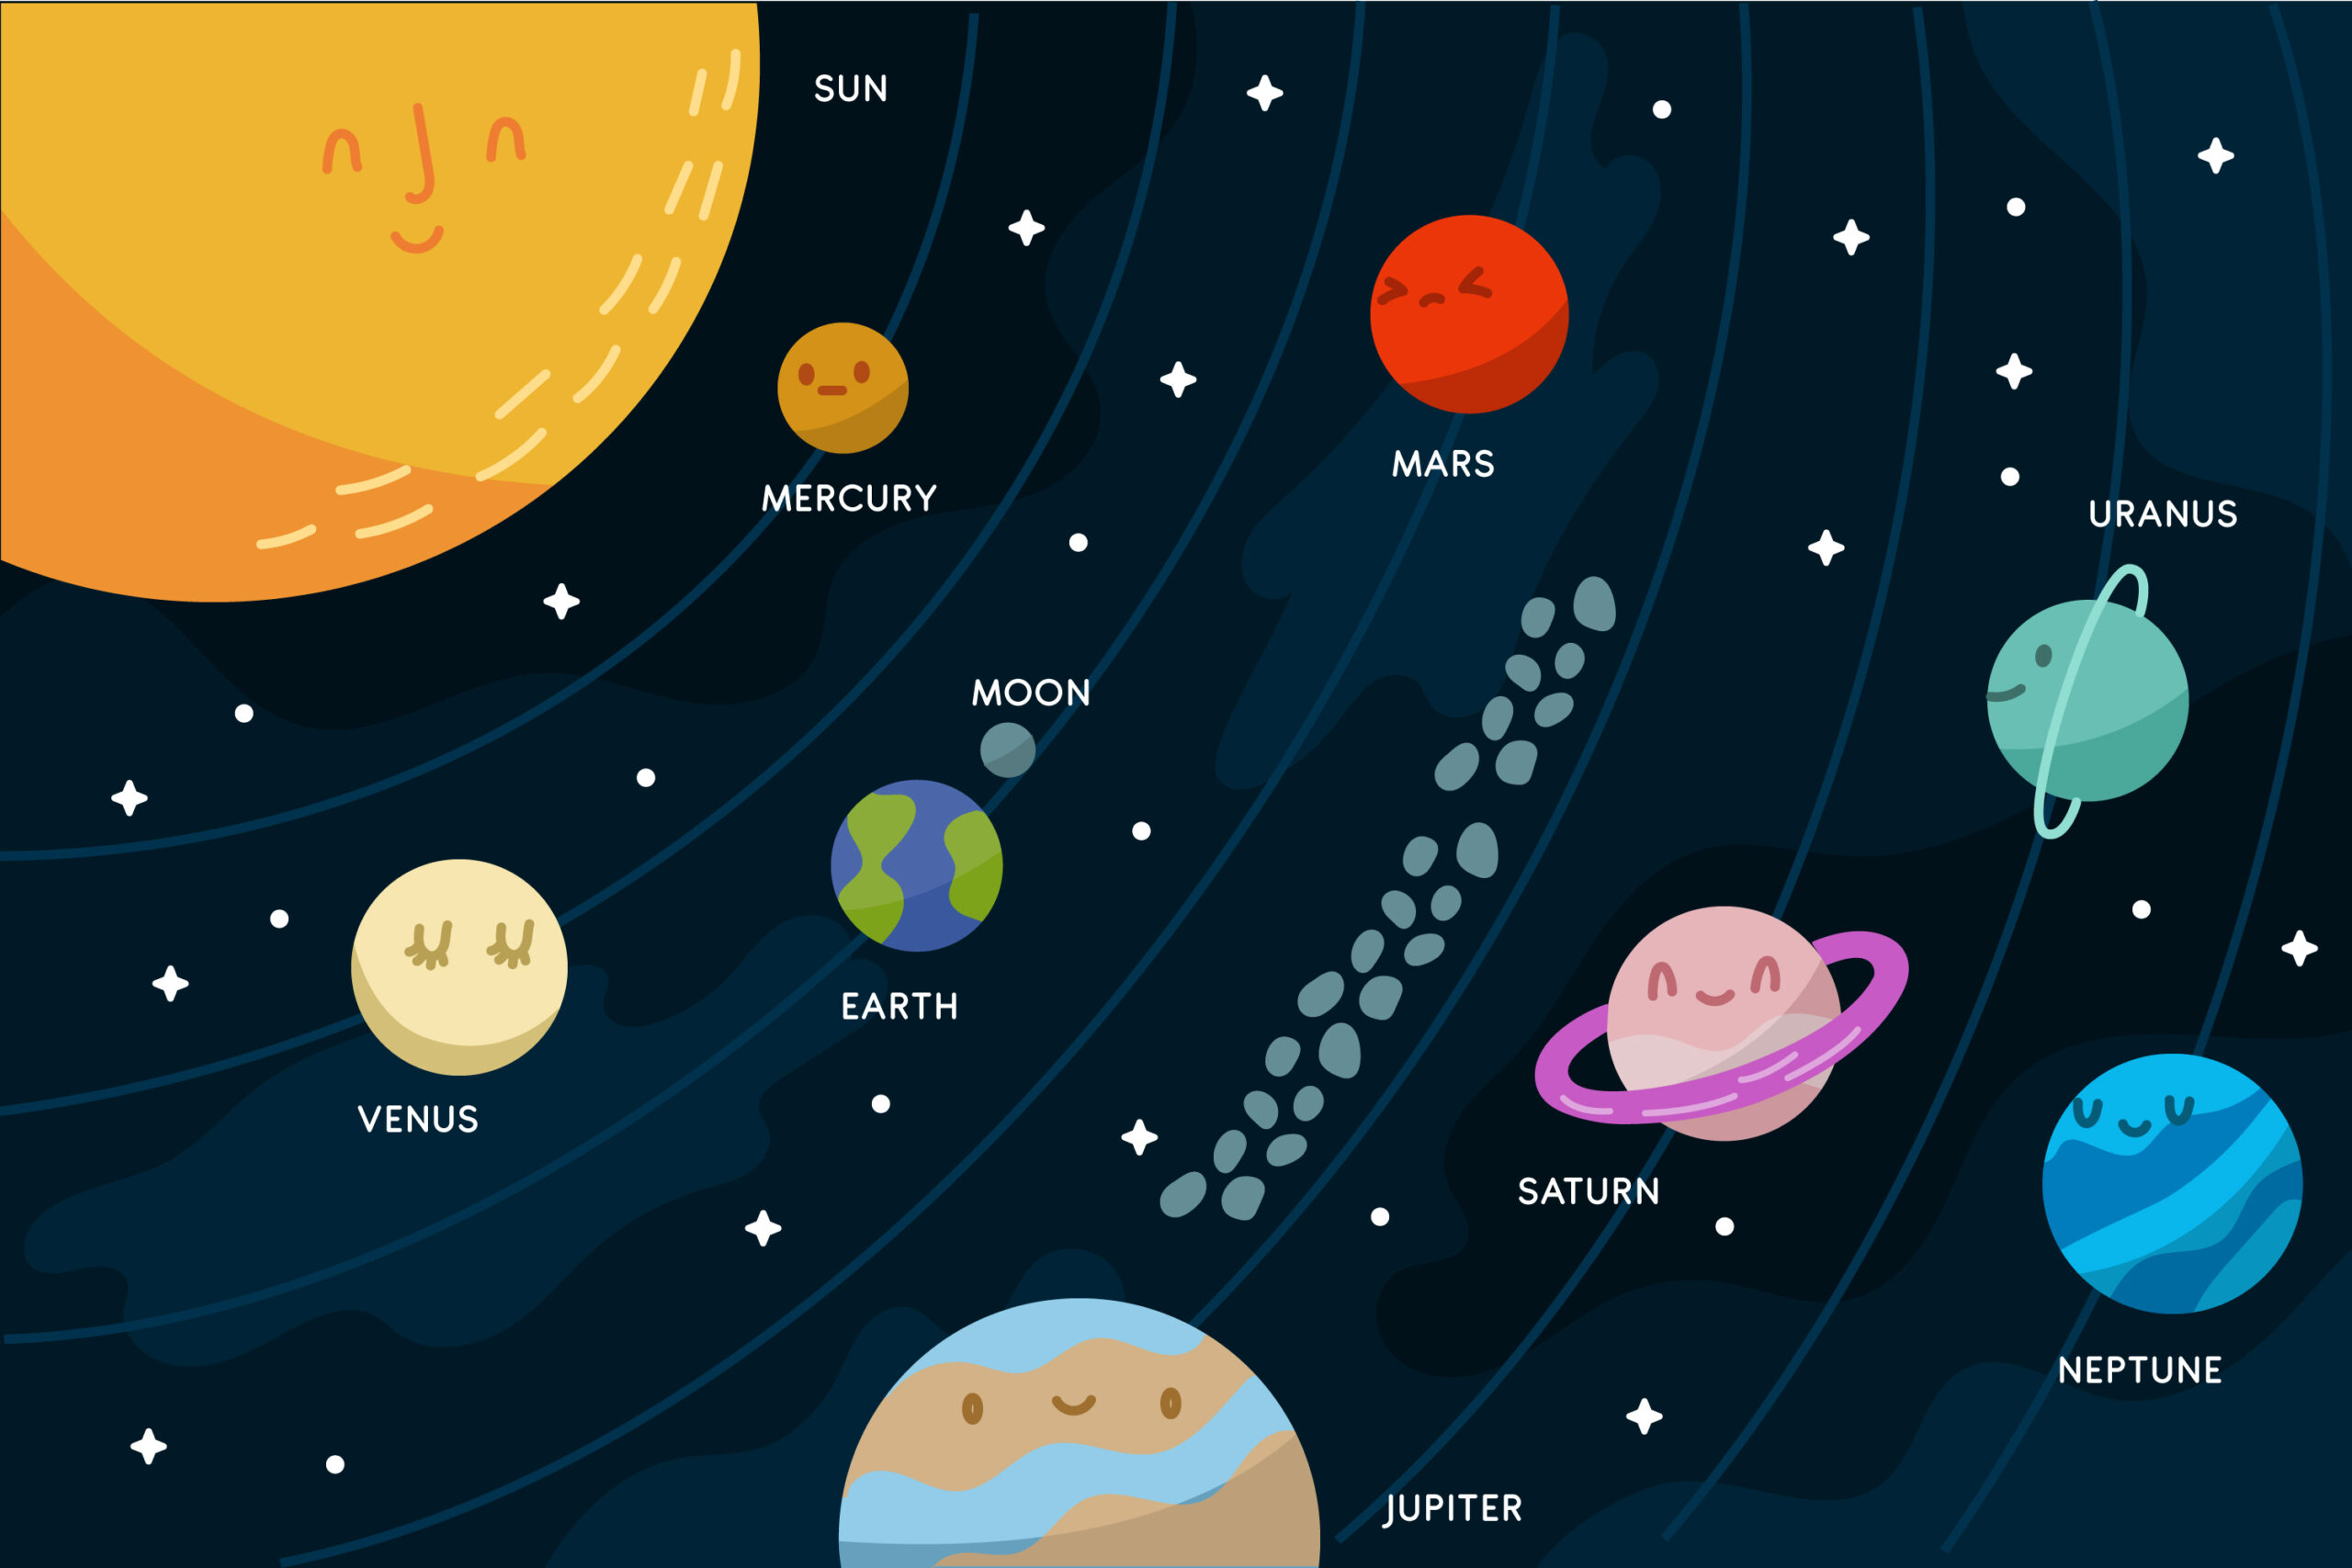 image of solar system with names of all planets